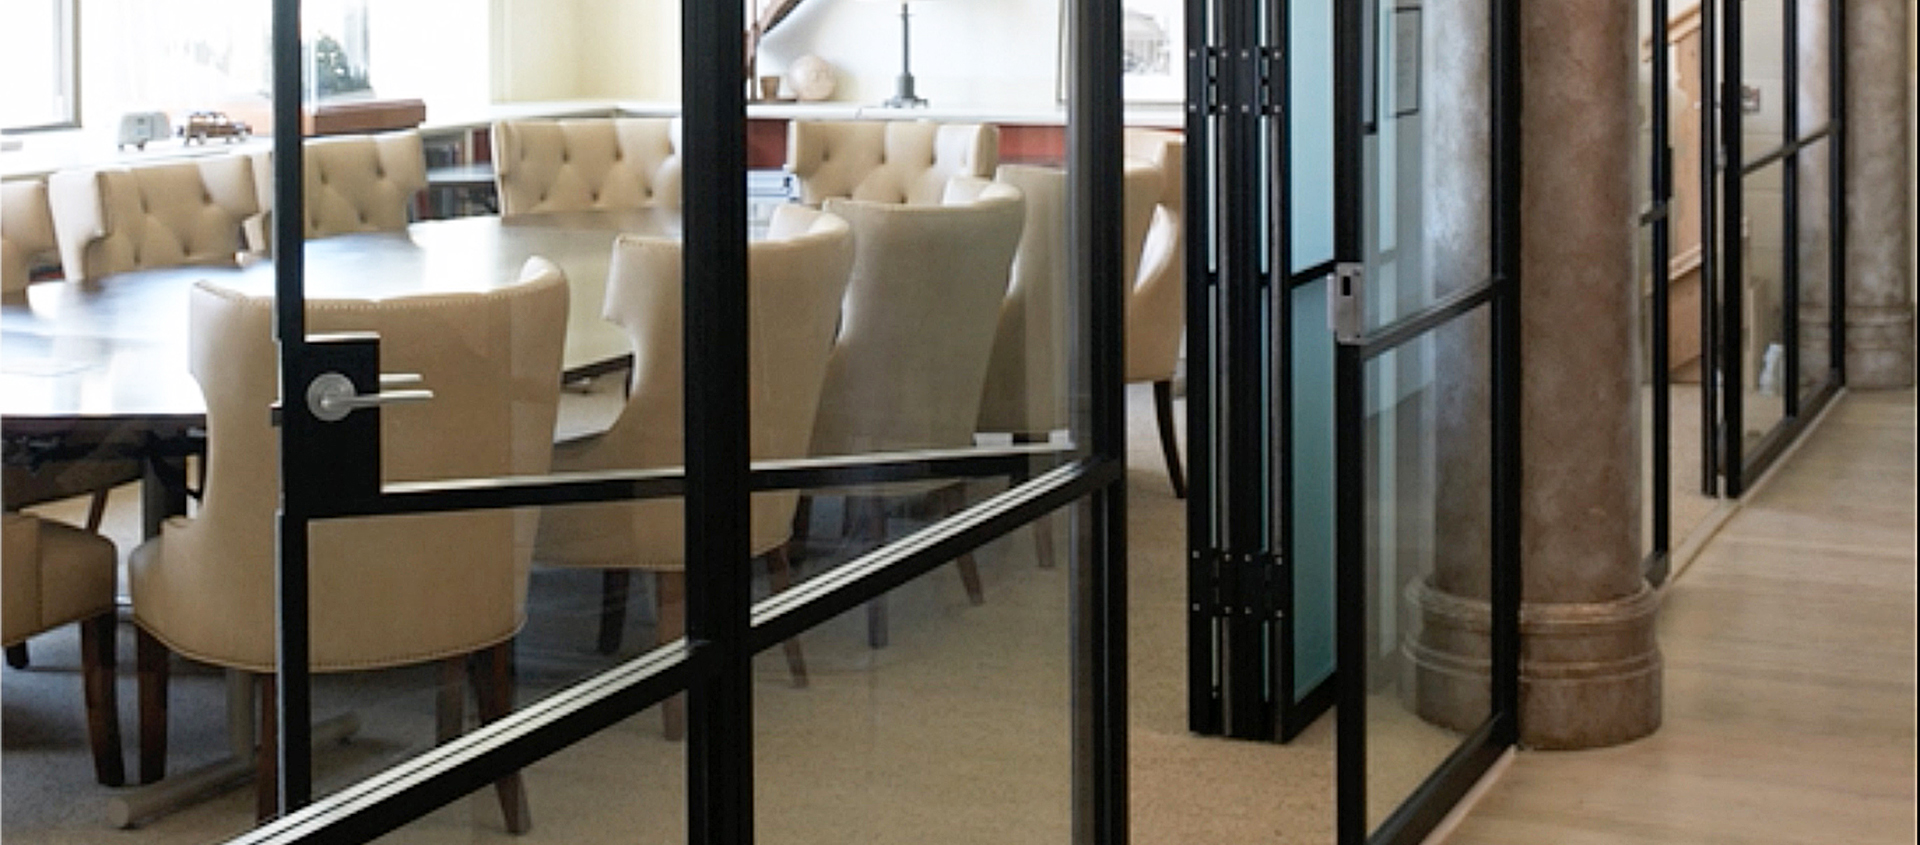 Glass wall systems by stylesglass modernfoldstyles for Retractable glass wall system